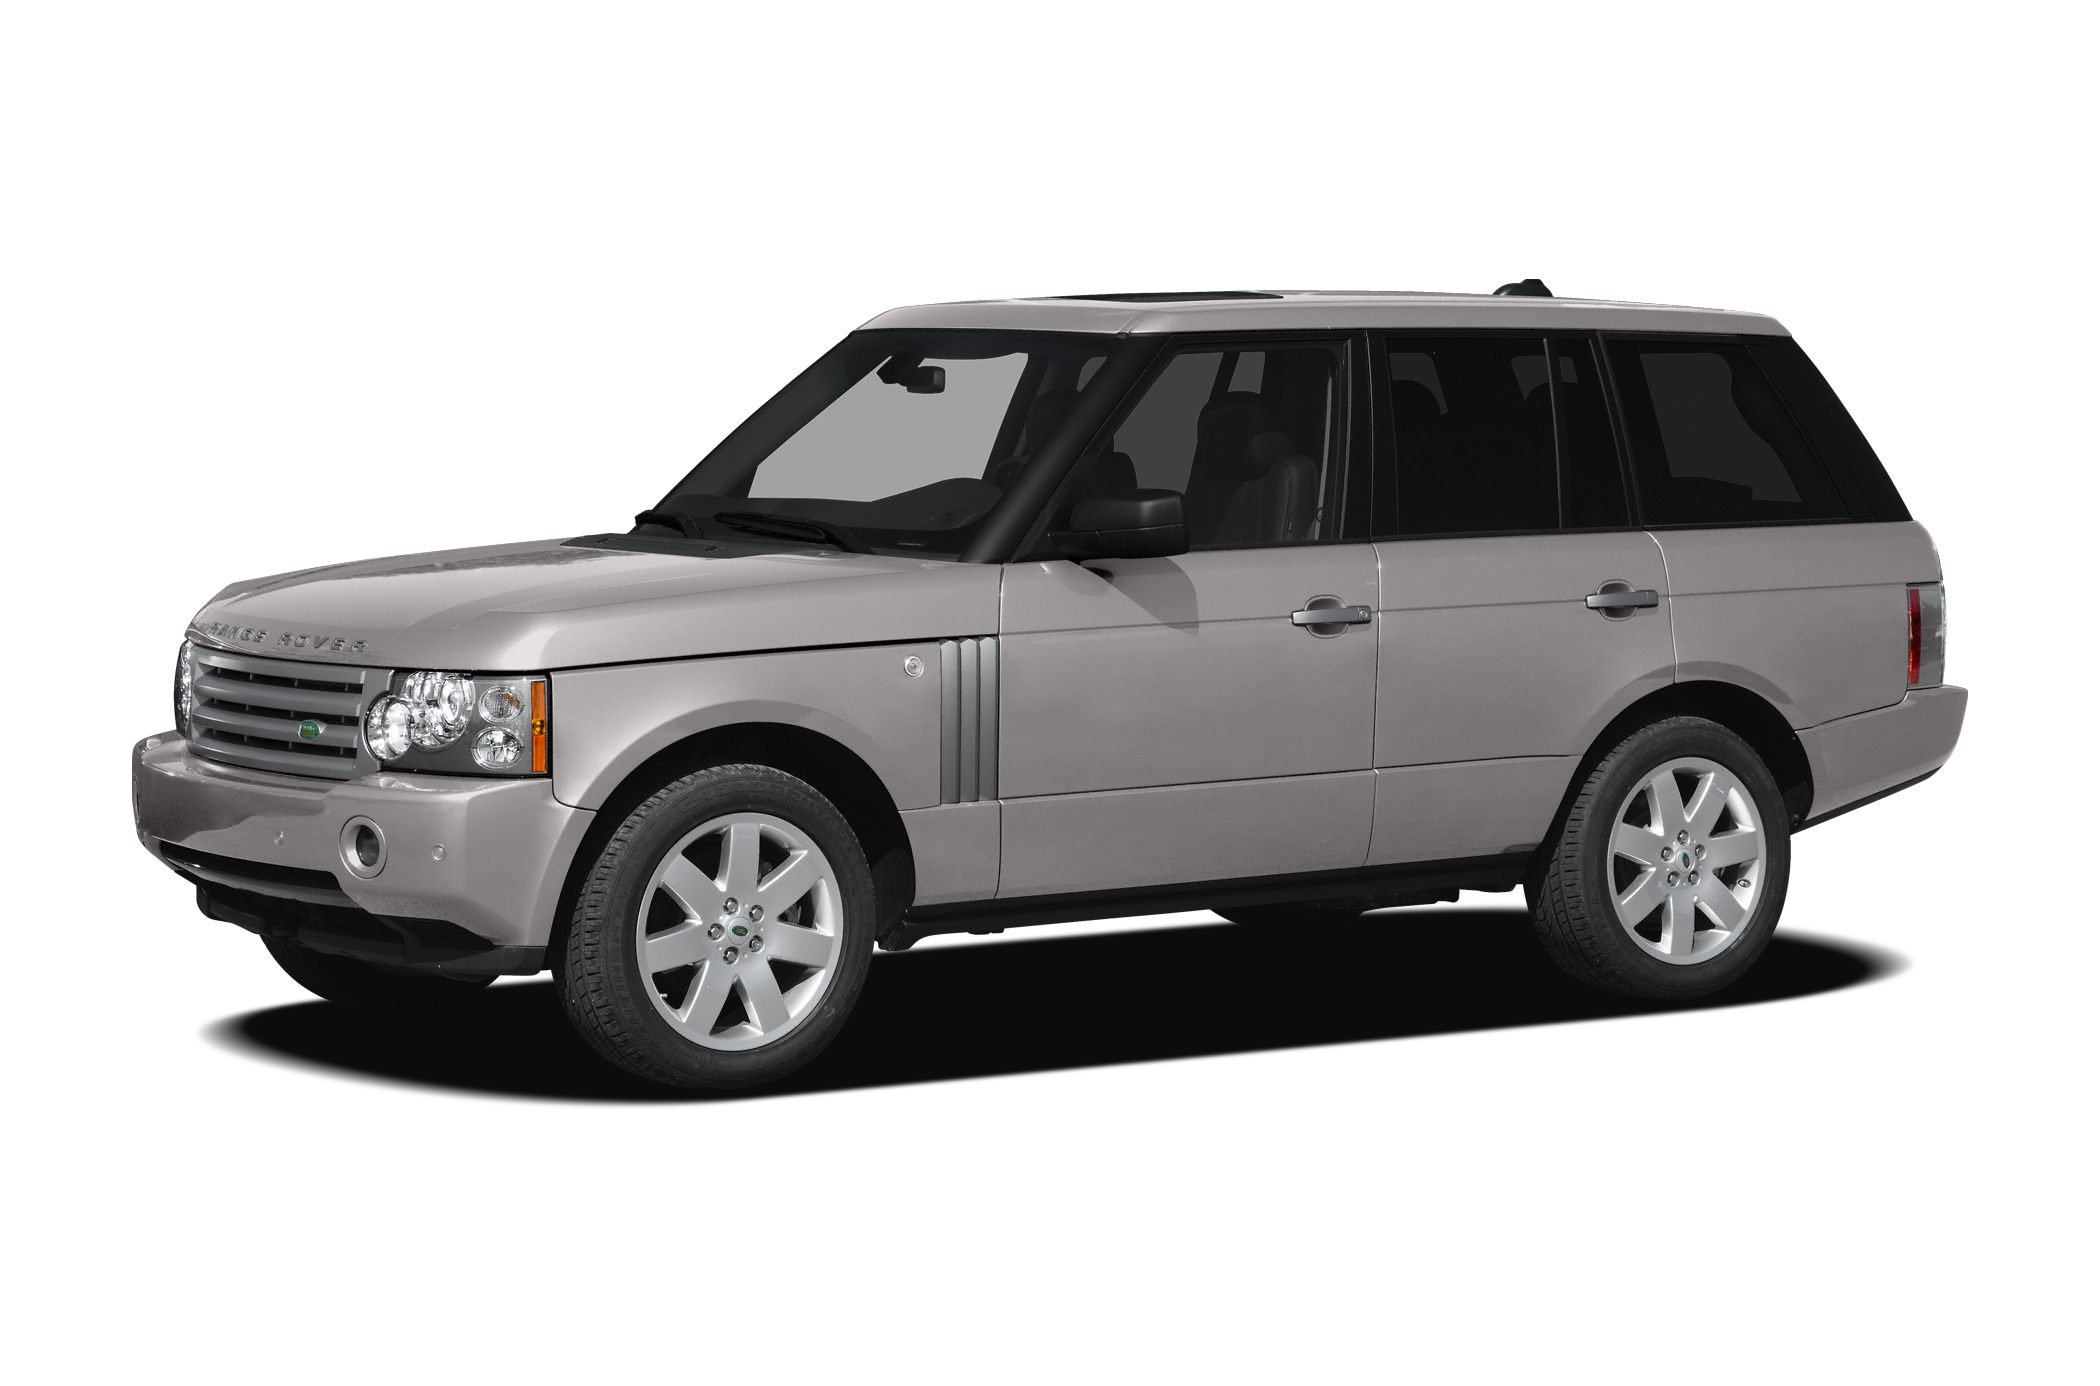 2008 Land Rover Range Rover HSE SUV for sale in Vienna for $18,771 with 121,727 miles